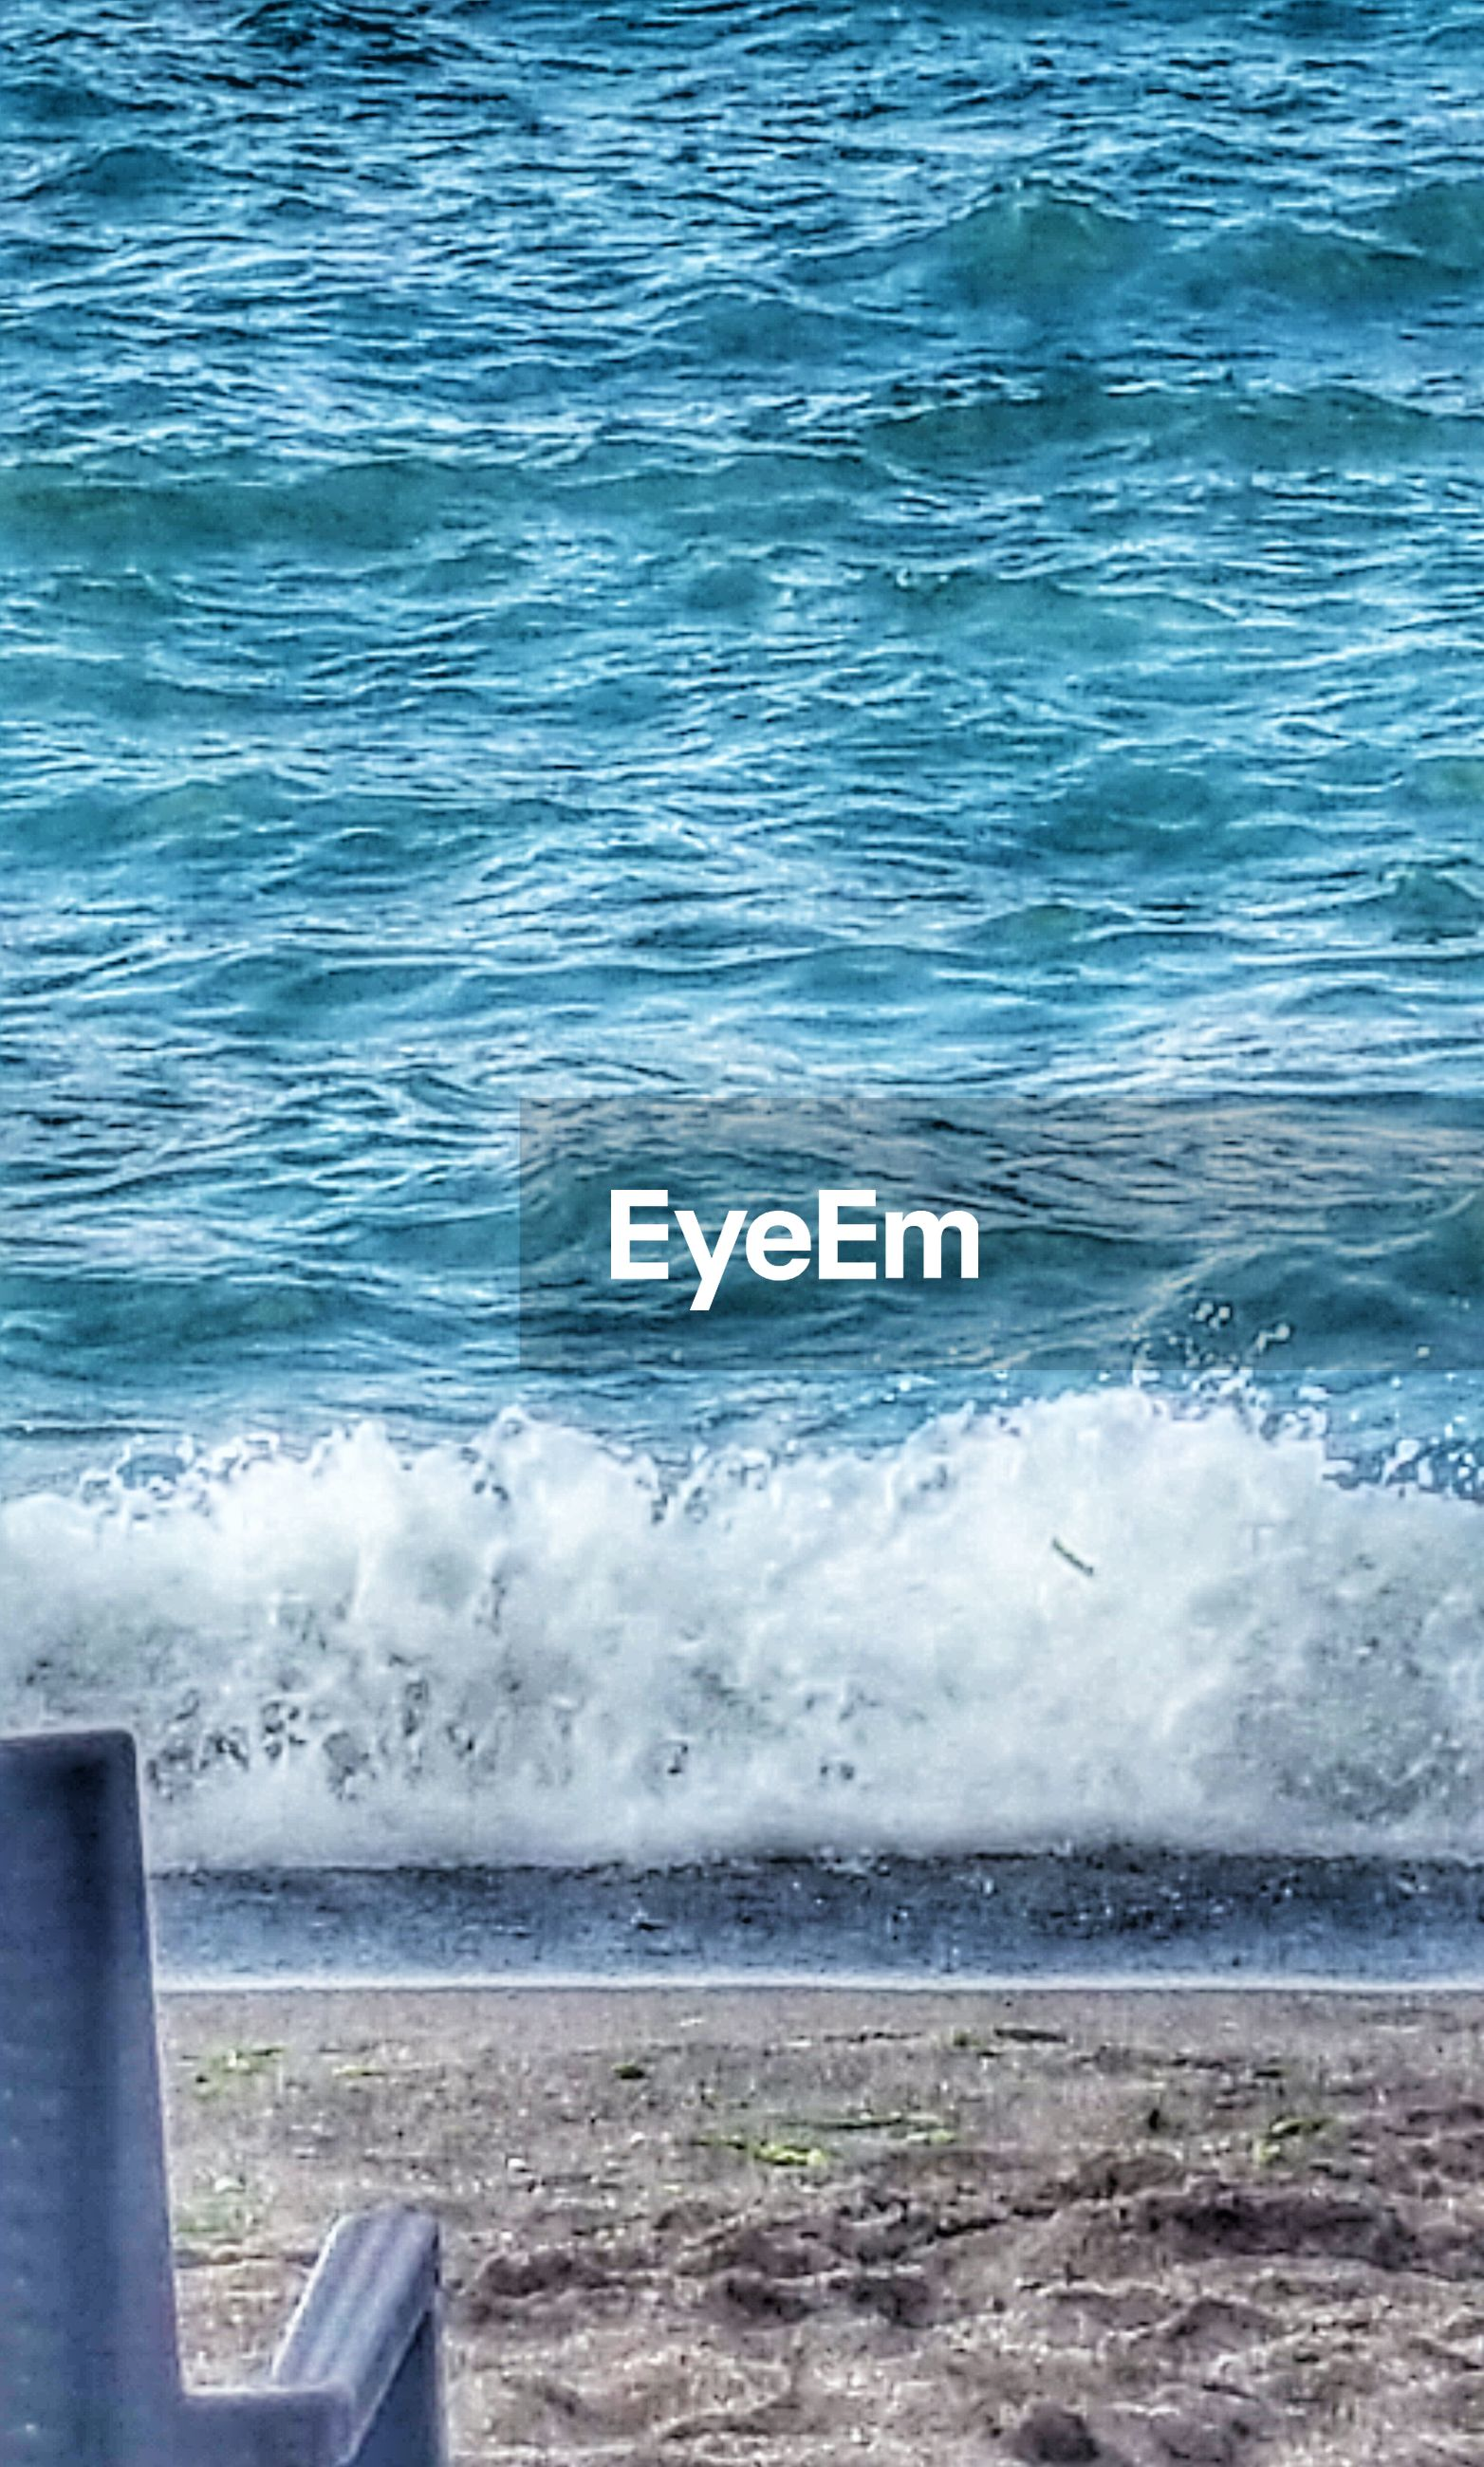 water, sea, wave, rippled, motion, nature, day, beauty in nature, no people, outdoors, scenics, blue, coastline, seascape, tranquility, idyllic, ocean, tranquil scene, close-up, sky